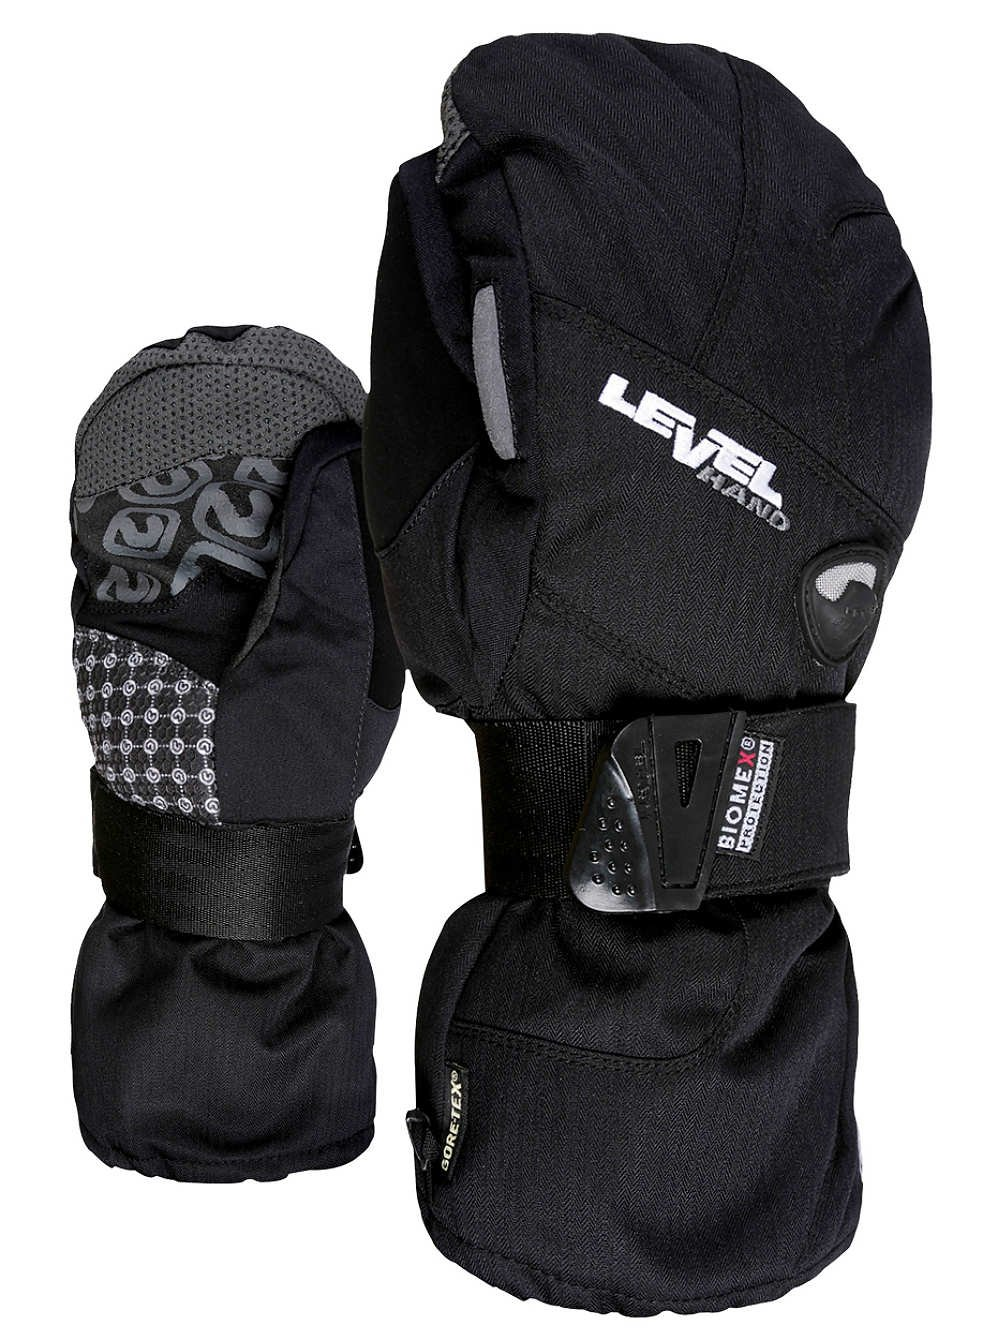 Level Women's Half Pipe Goretex Mitt Black (7.0/S) by Level 99